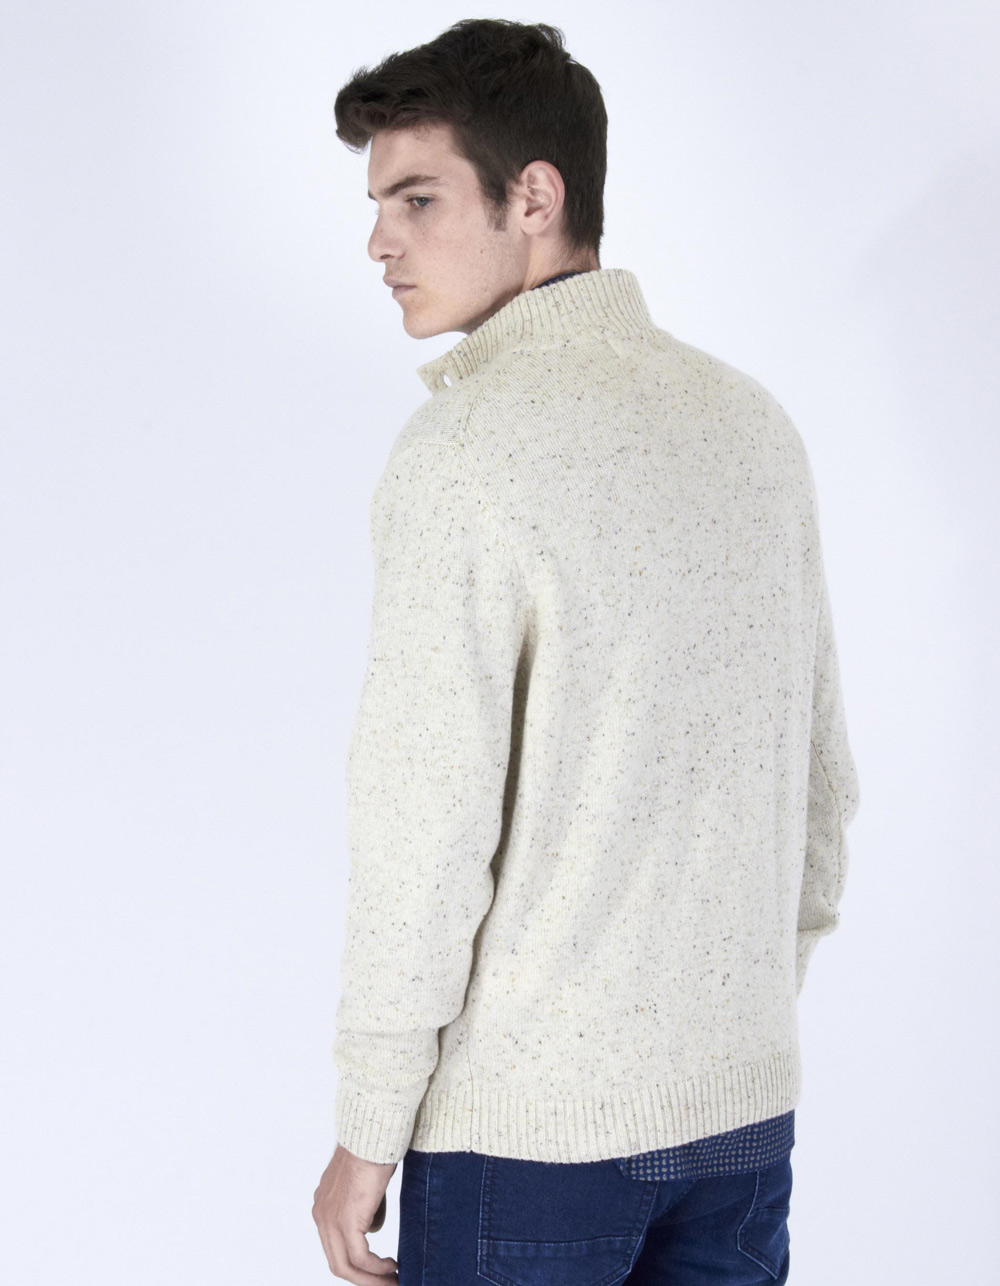 Blue knit button sweater - Backside